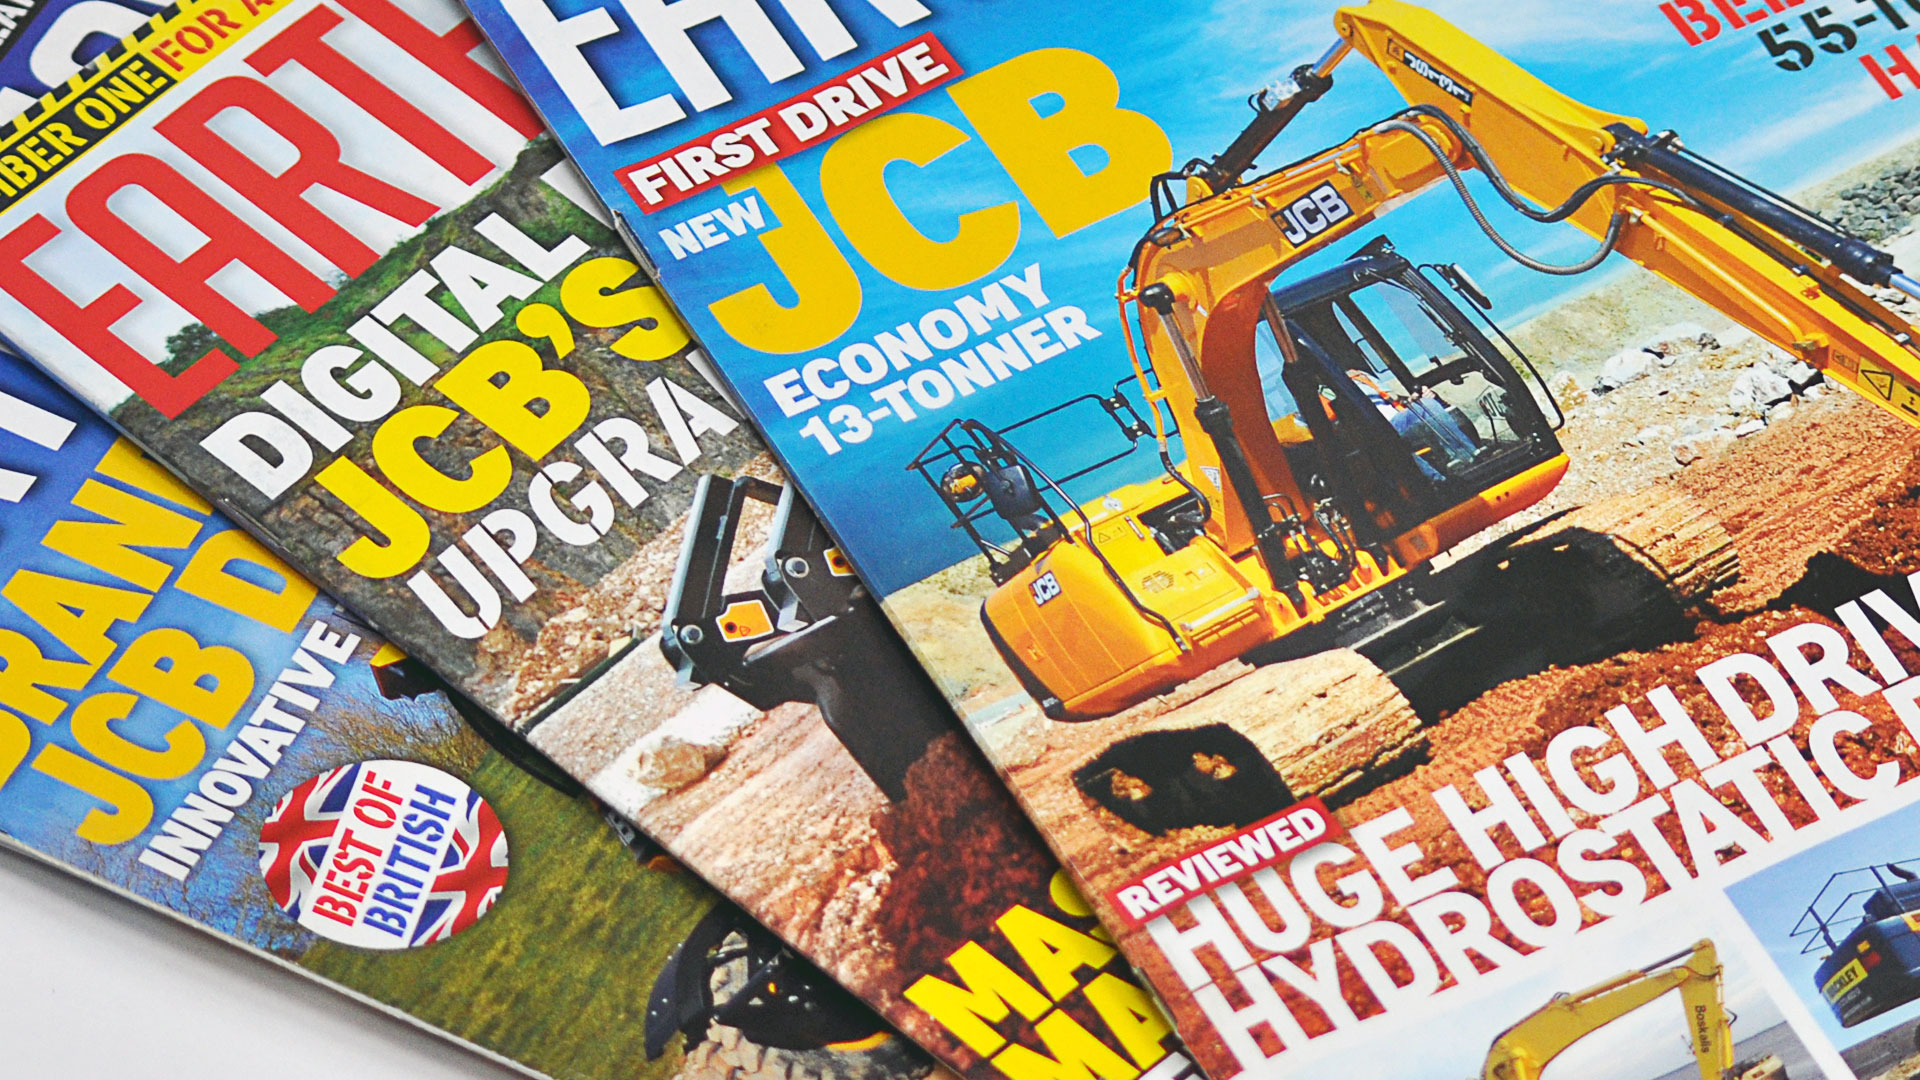 Earthmovers magazine covers featuring JCB